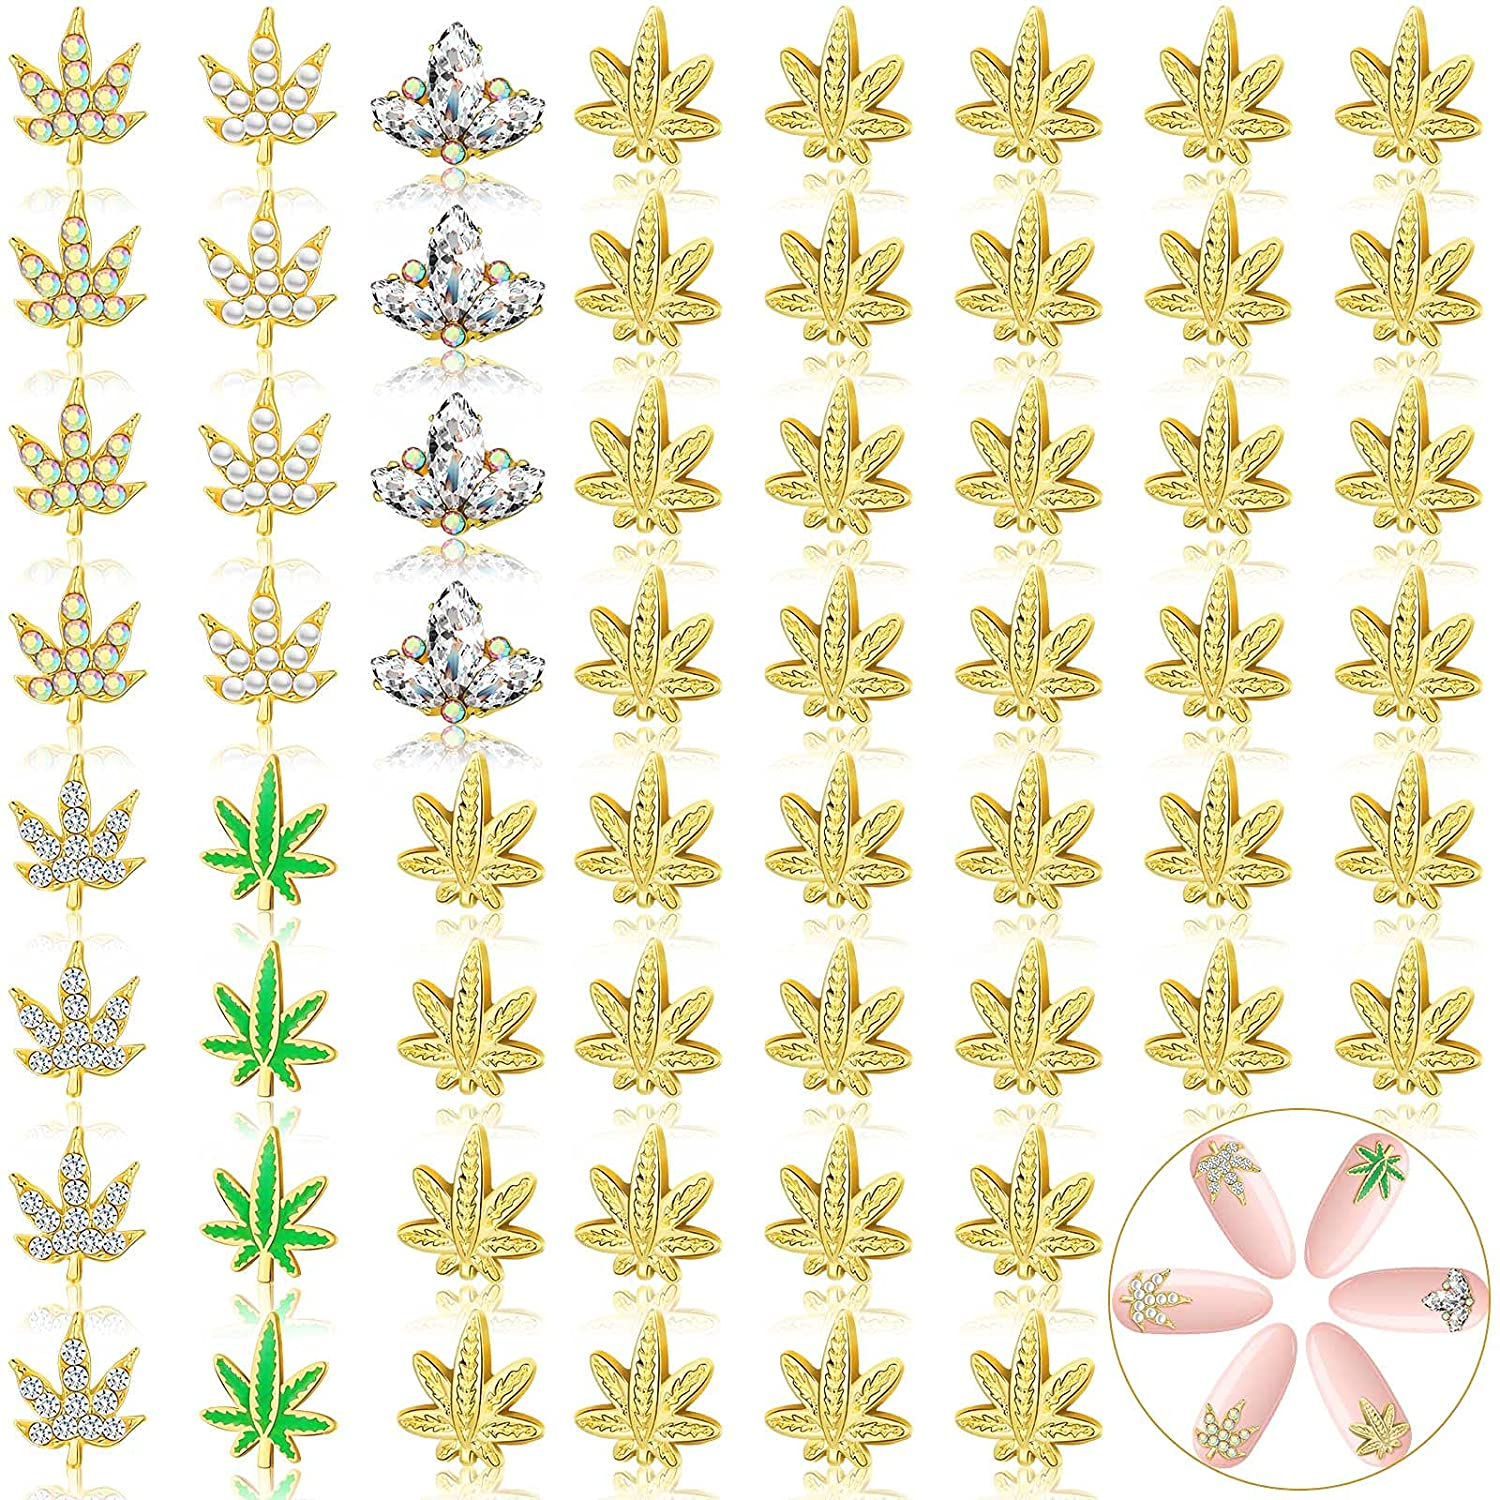 60 Pieces 3D Nail Art Decorations 6 Design Leaf Nail Charm Leaf Rhinestone Charm Nail Decoration Diamond Maple Leaves Nail Charms for Nail Scrapbooking DIY Craft Jewelry Making